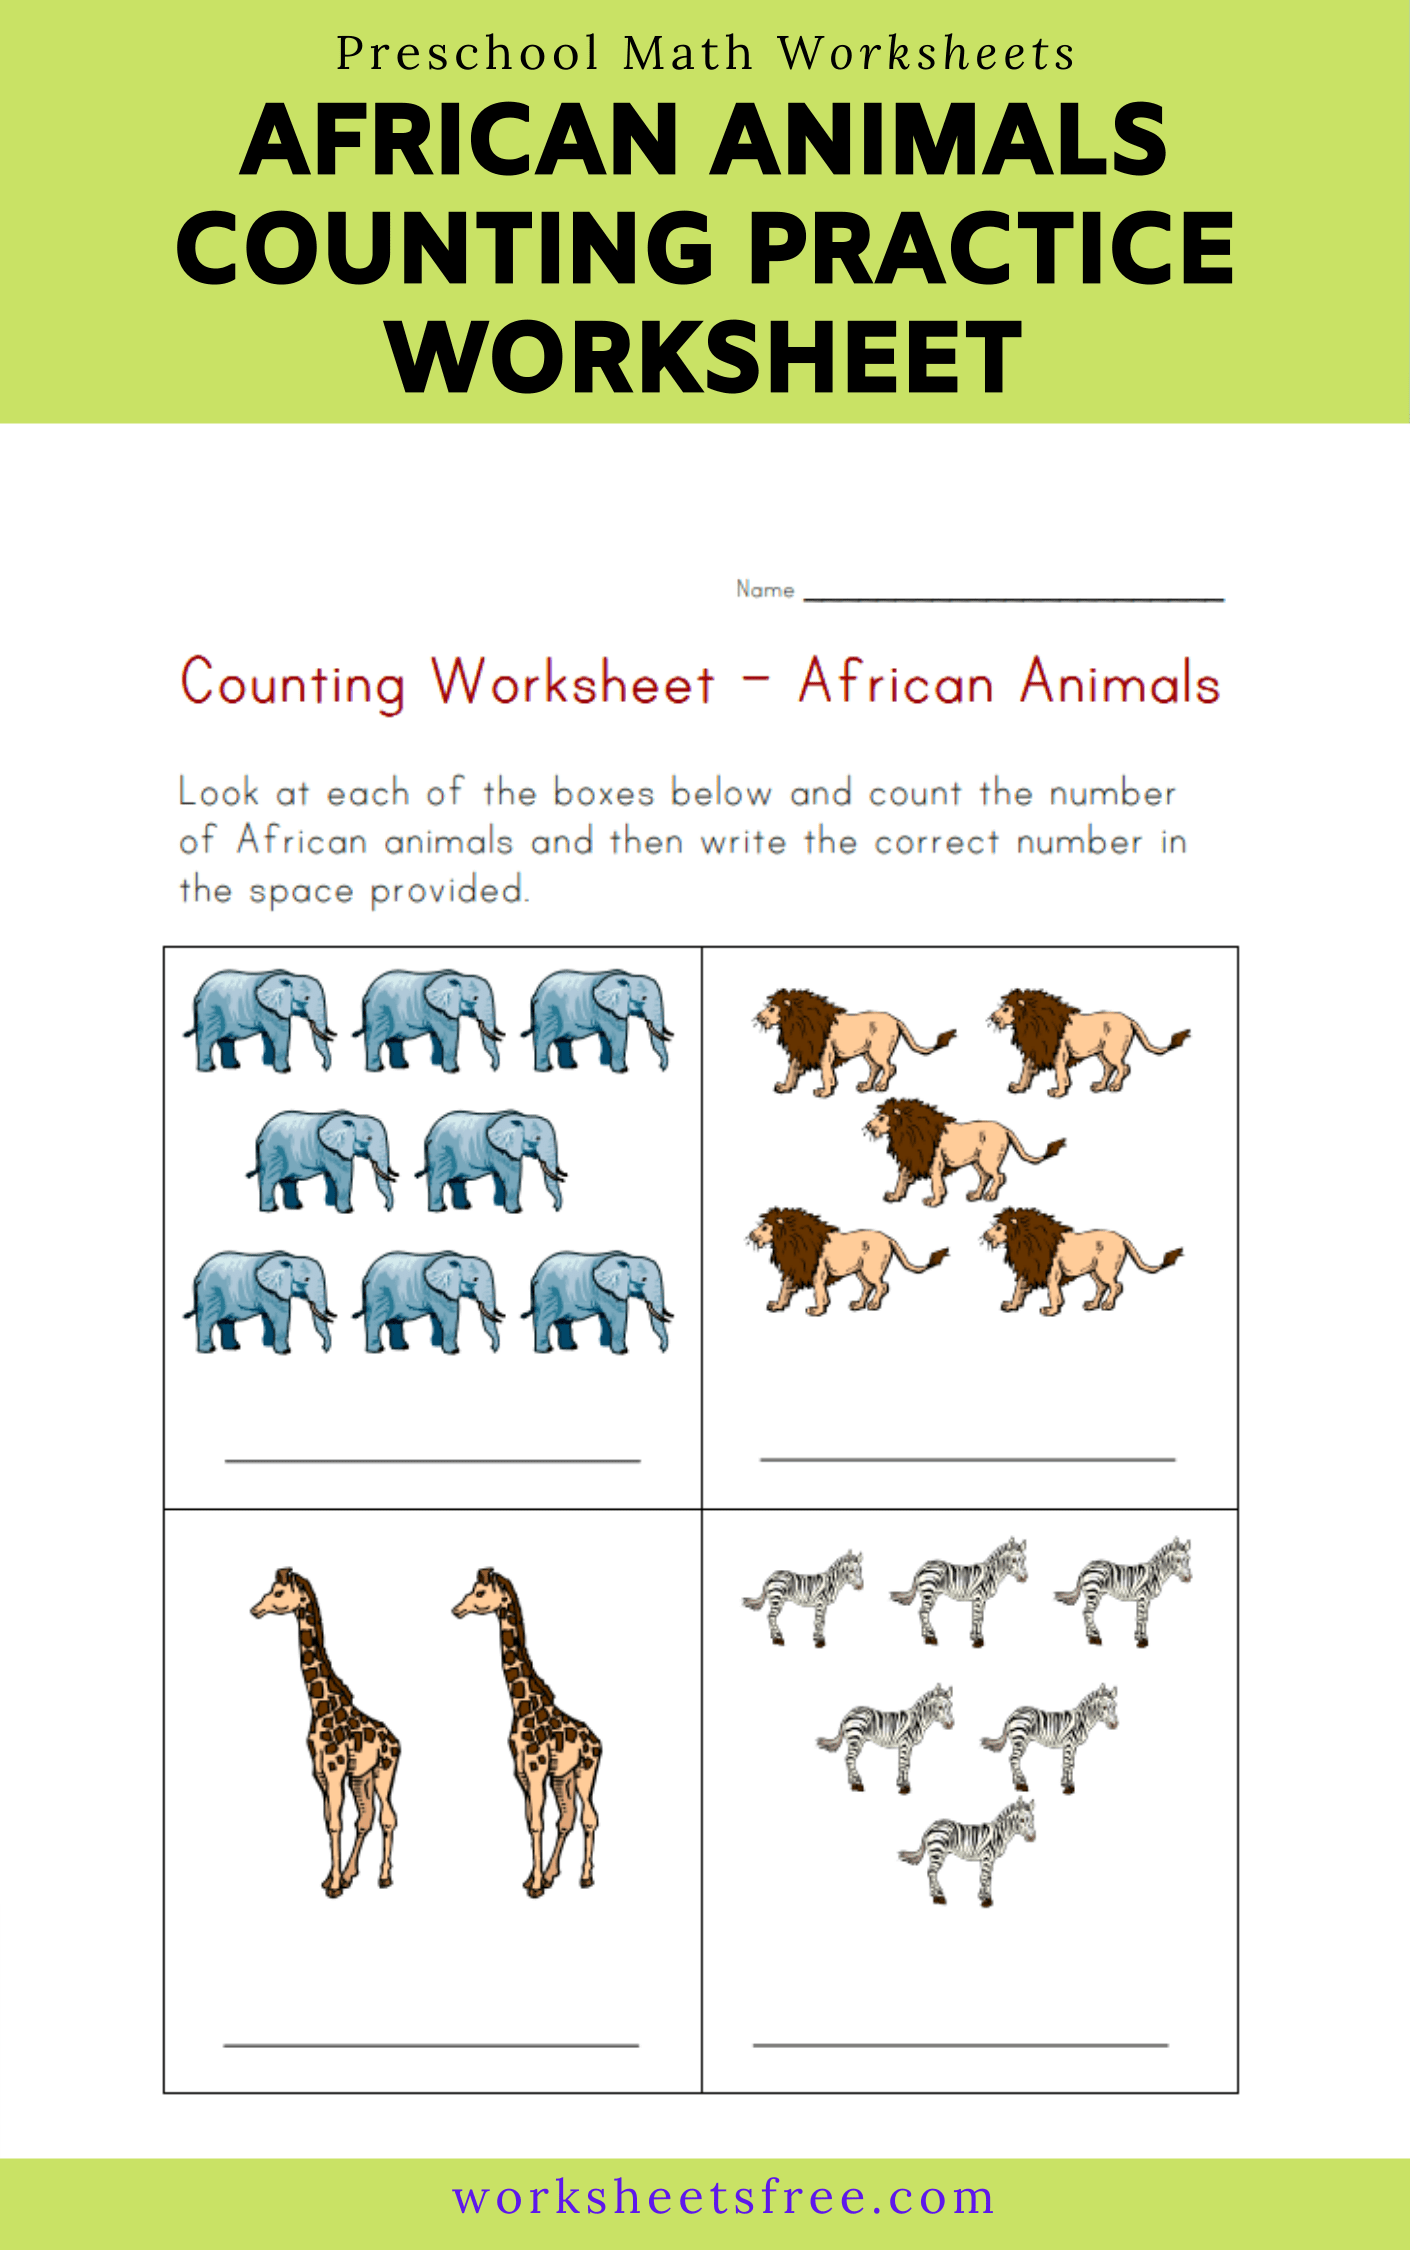 African Animals Counting Practice Worksheet